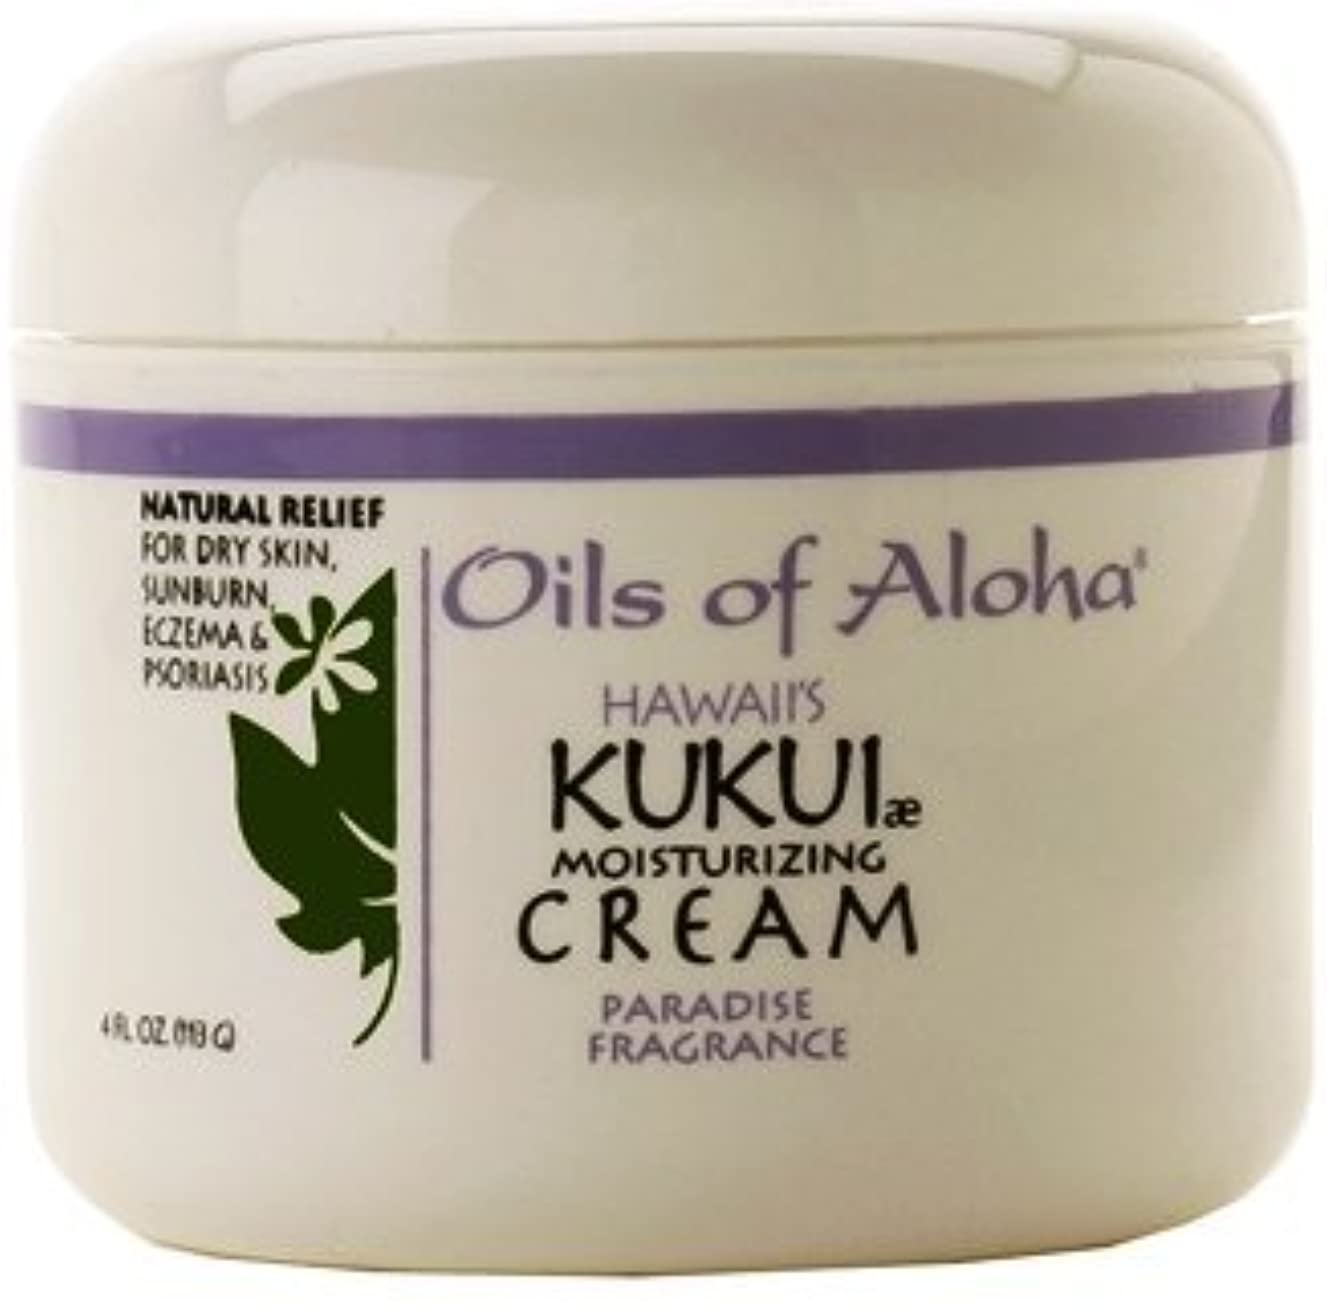 Hawaiian Value Pack Kukui Nut Oil Of Aloha Cream Paradise Fragrance 3 Jars 4 oz. each by Oils of Aloha